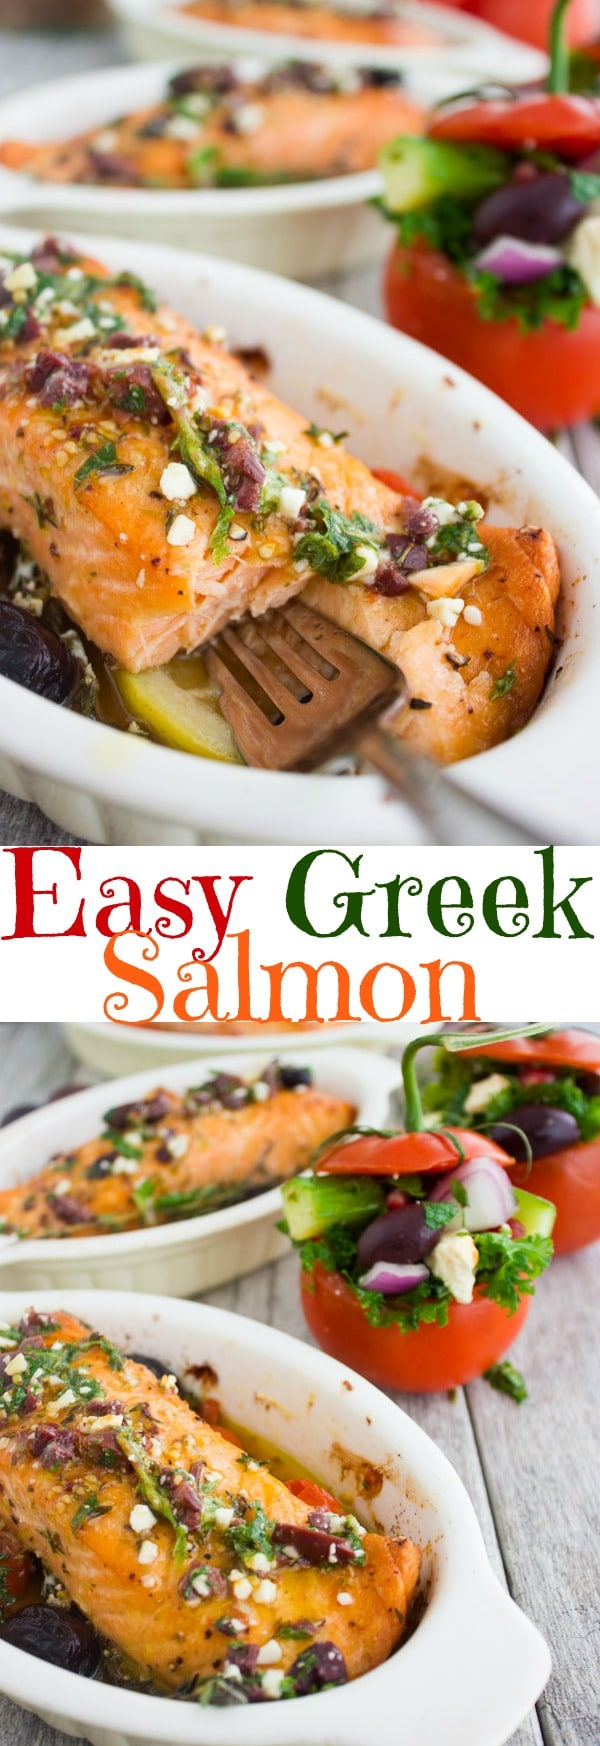 Baked Salmon with Greek Dressing | This Baked Salmon recipe is a real dinner party saver! Drizzled with a Greek Dressing while still warm, it absorbs all those gorgeous Mediterranean flavours. Serve them with my Kale Greek Salad Stuffed Tomatoes for an unforgettable feast. #salmon, #salmonrecipes, #lowcarbdinner, #Greek, #dinnerparty, #baked